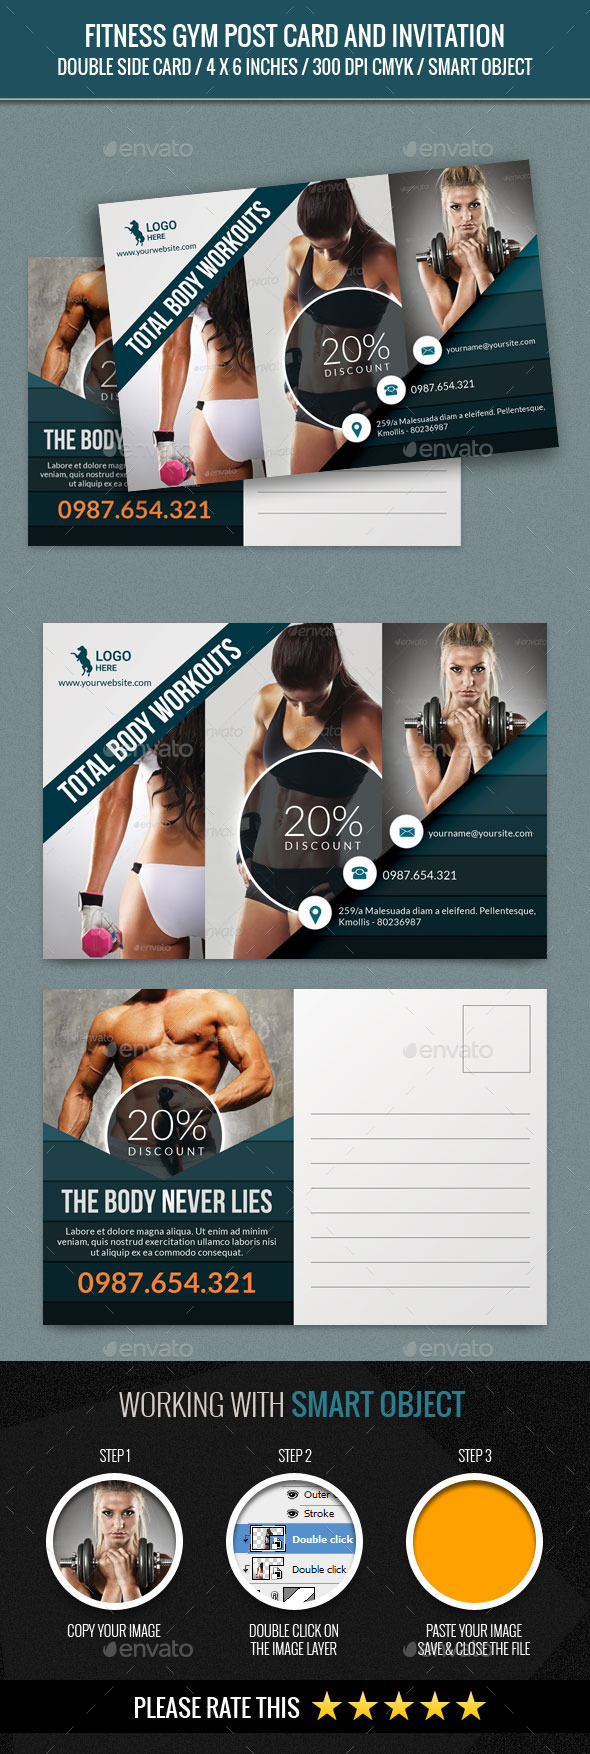 Fitness and GYM Post Card Template #design Download: http://graphicriver.net/item/fitness-and-gym-post-card-template/12613442?ref=ksioks